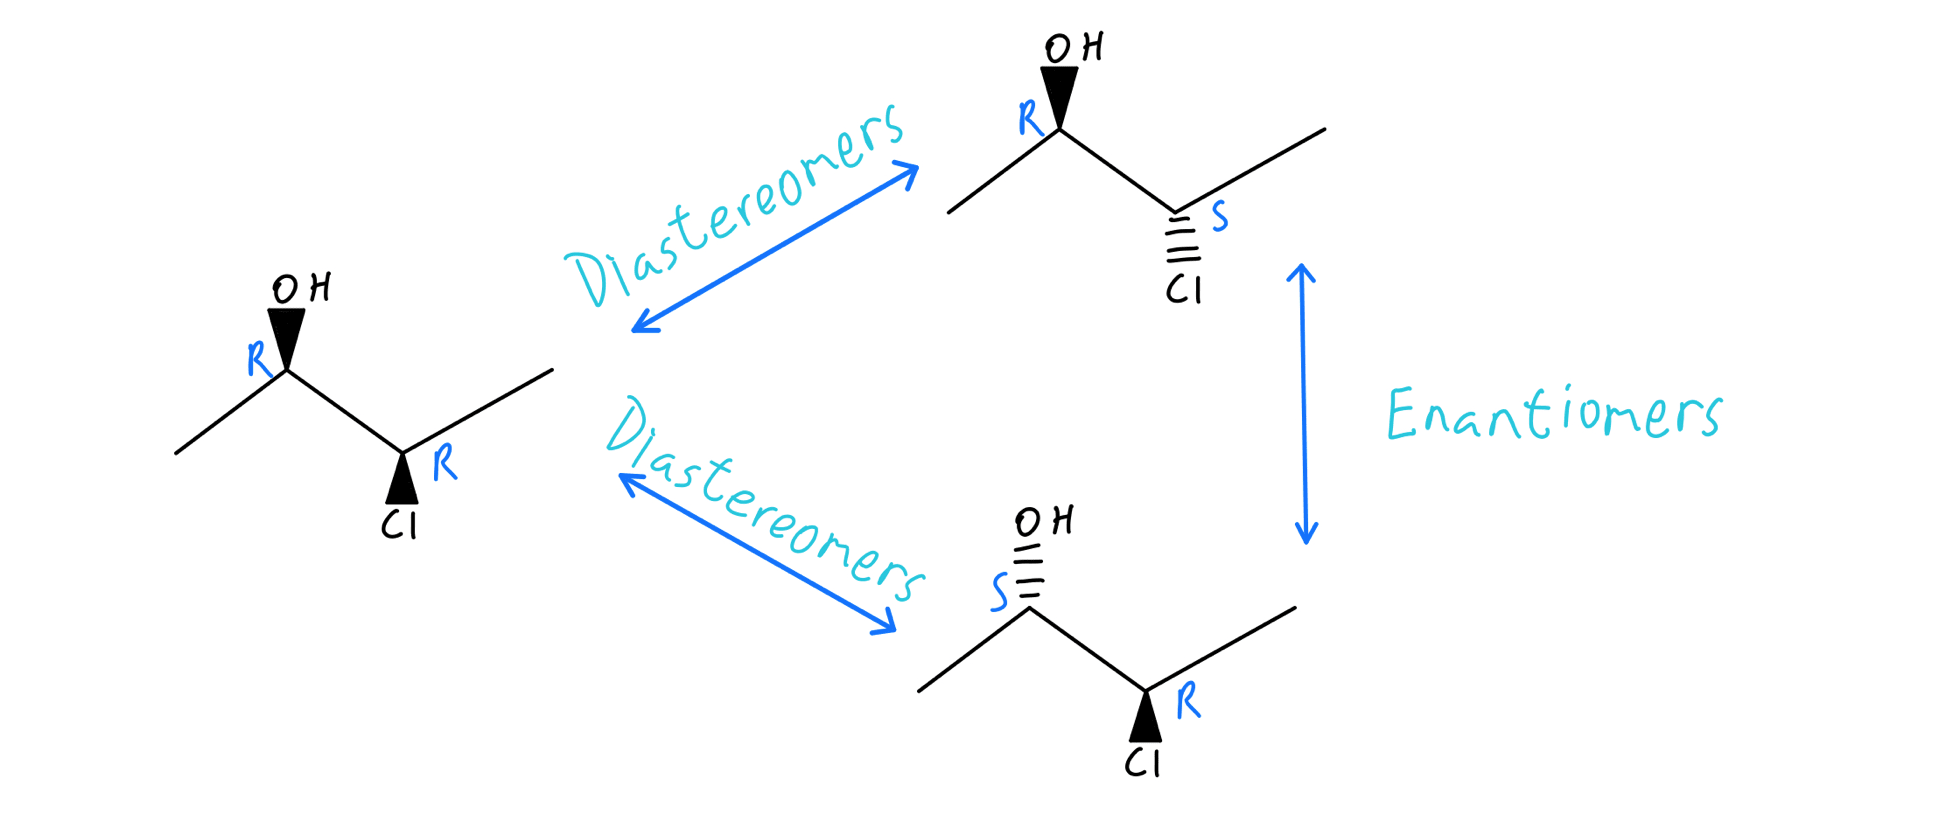 Relationships between stereoisomers